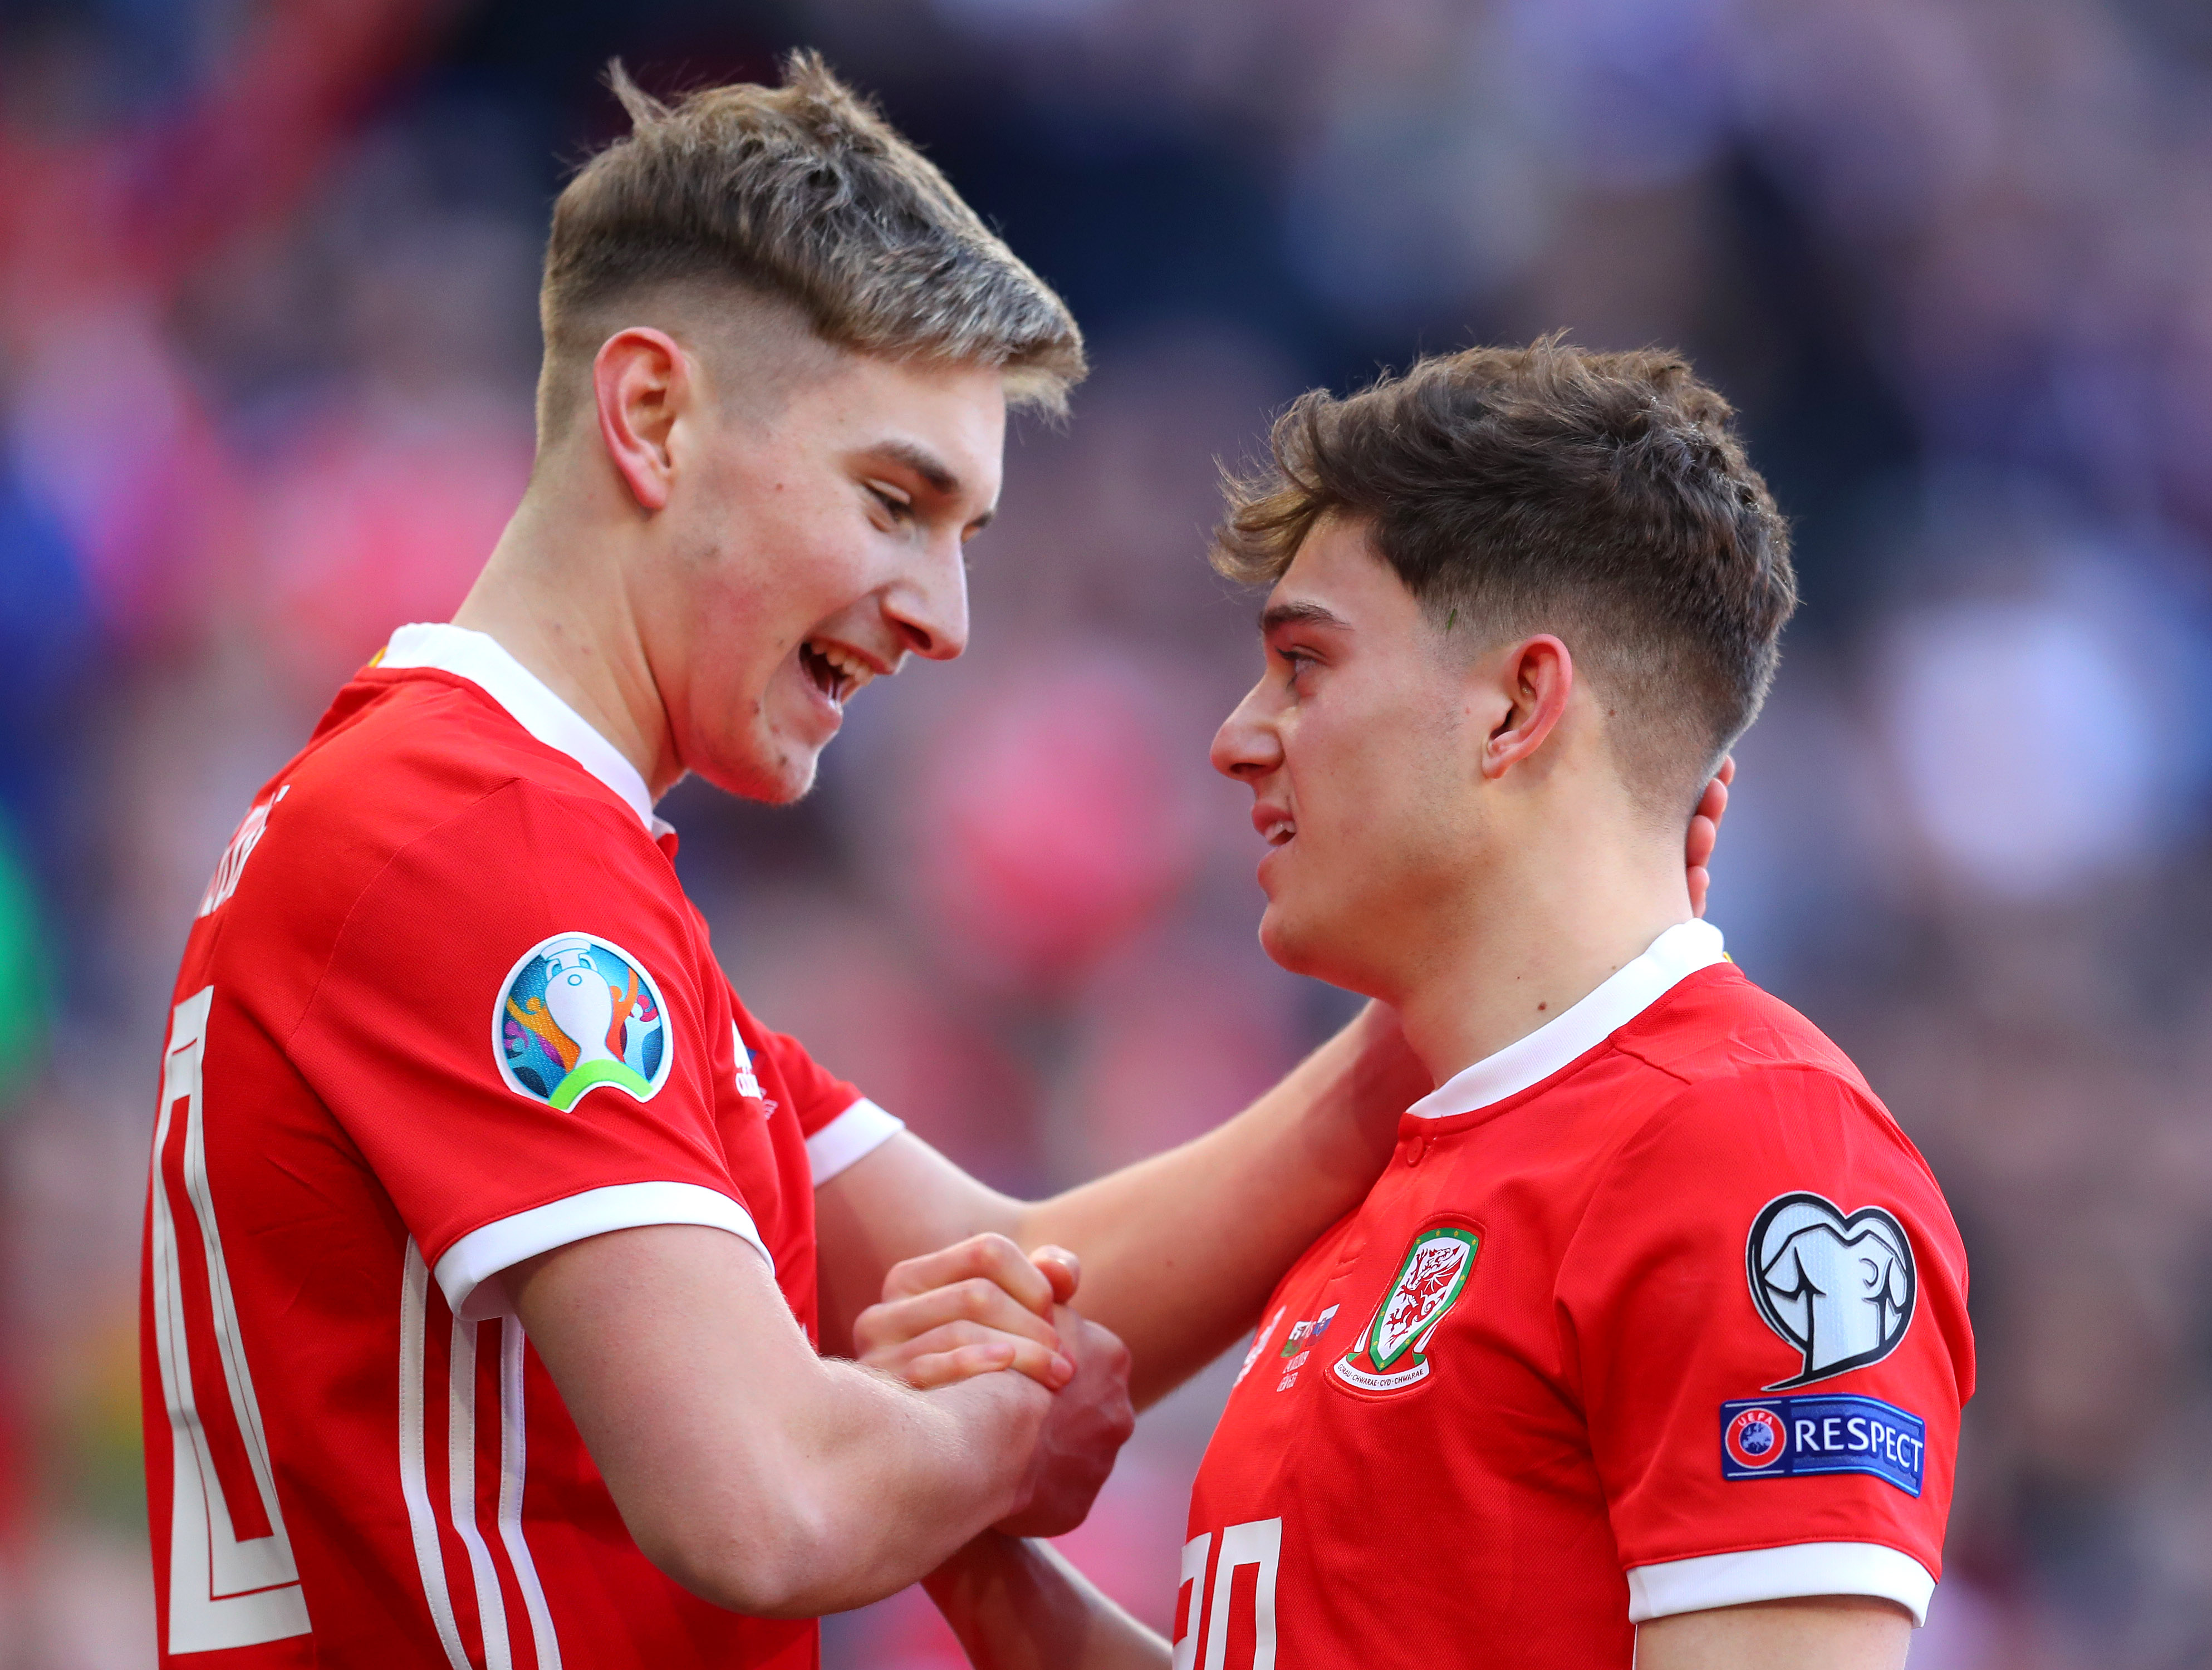 Will David Brooks join international teammate Daniel James at Manchester United? (Picture Courtesy - AFP/Getty Images)